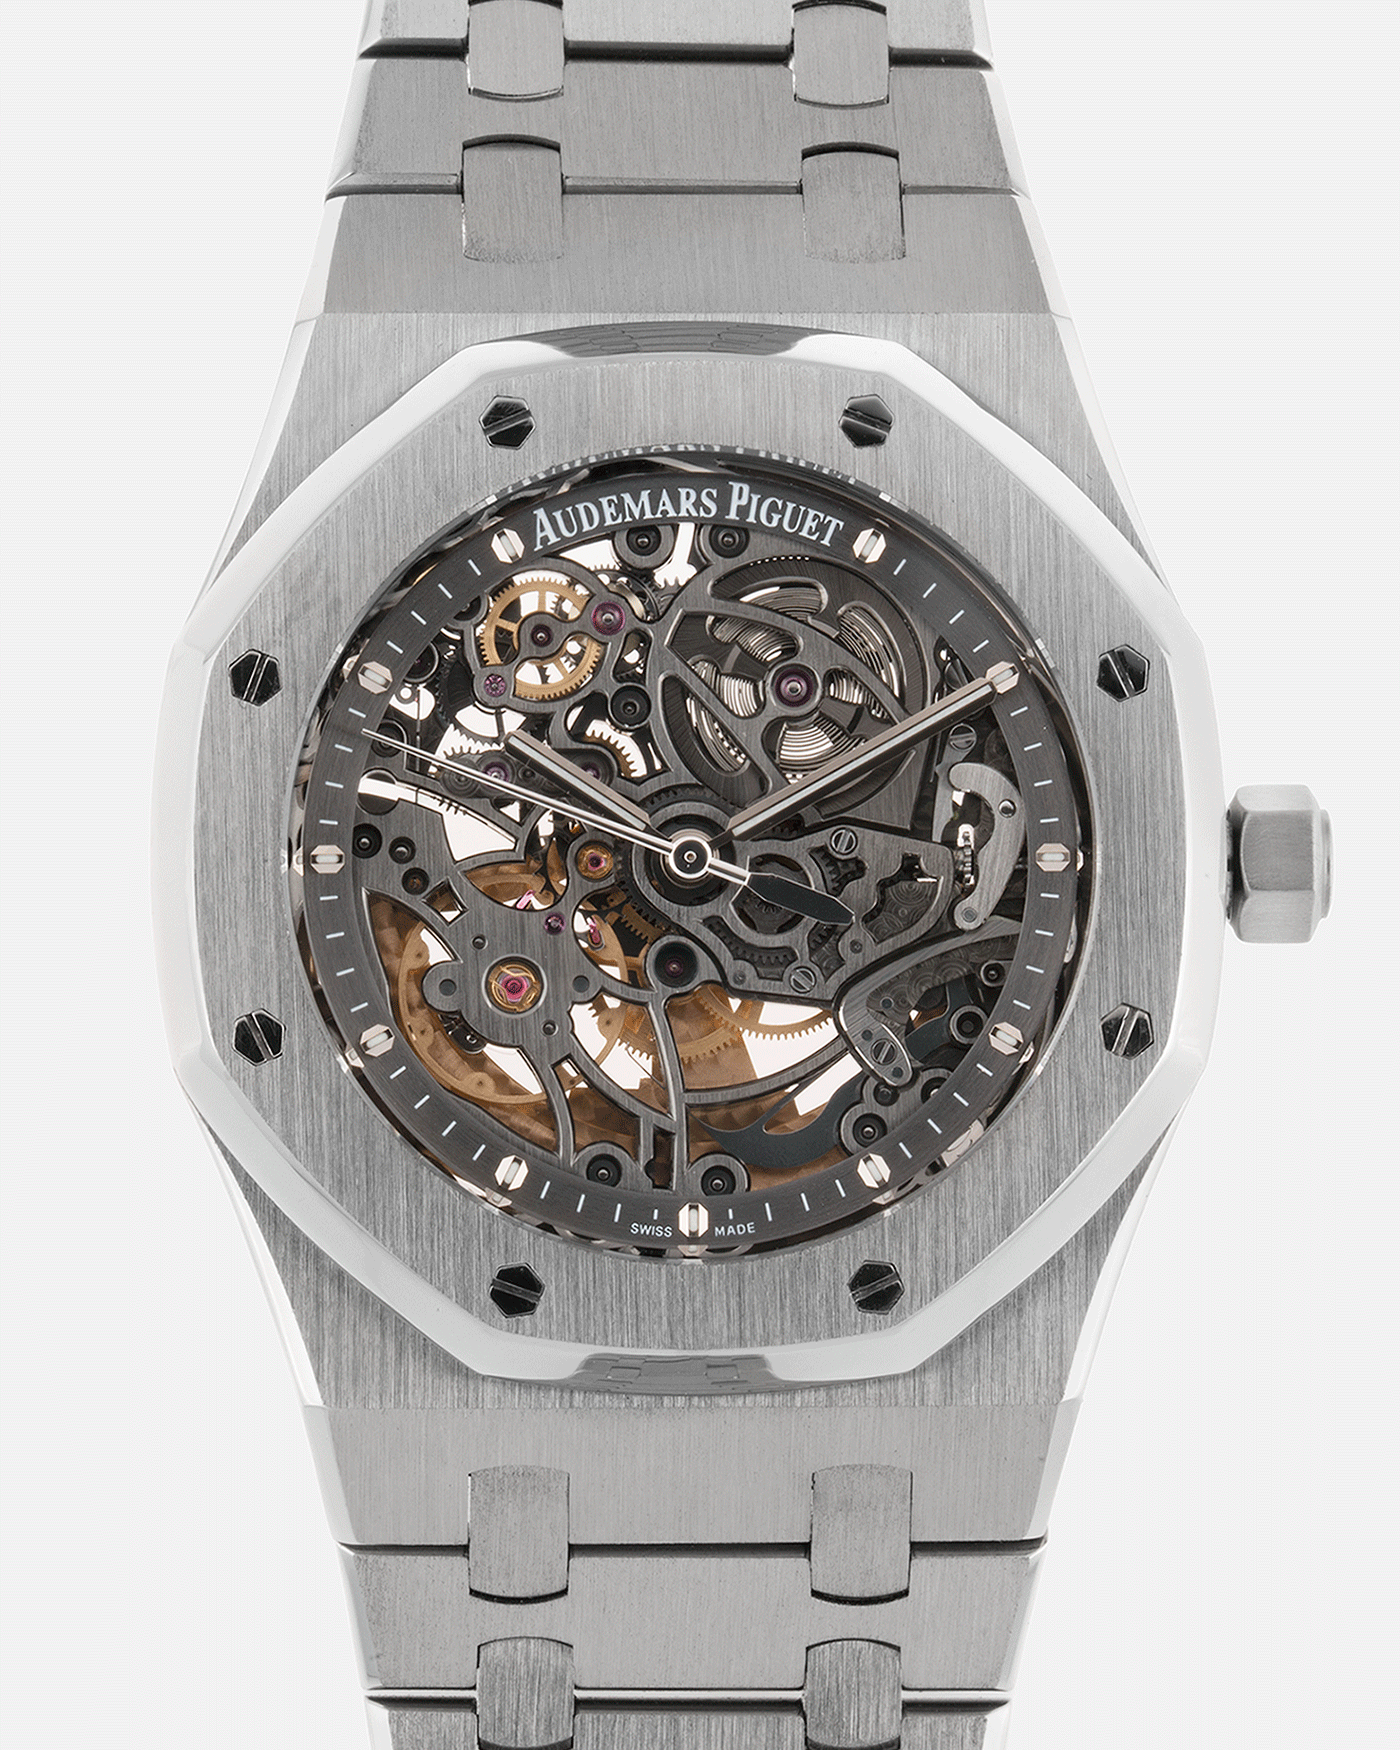 Audemars Piguet Royal Oak 15305ST Openworked Skeleton Watch | S.Song Vintage Timepieces